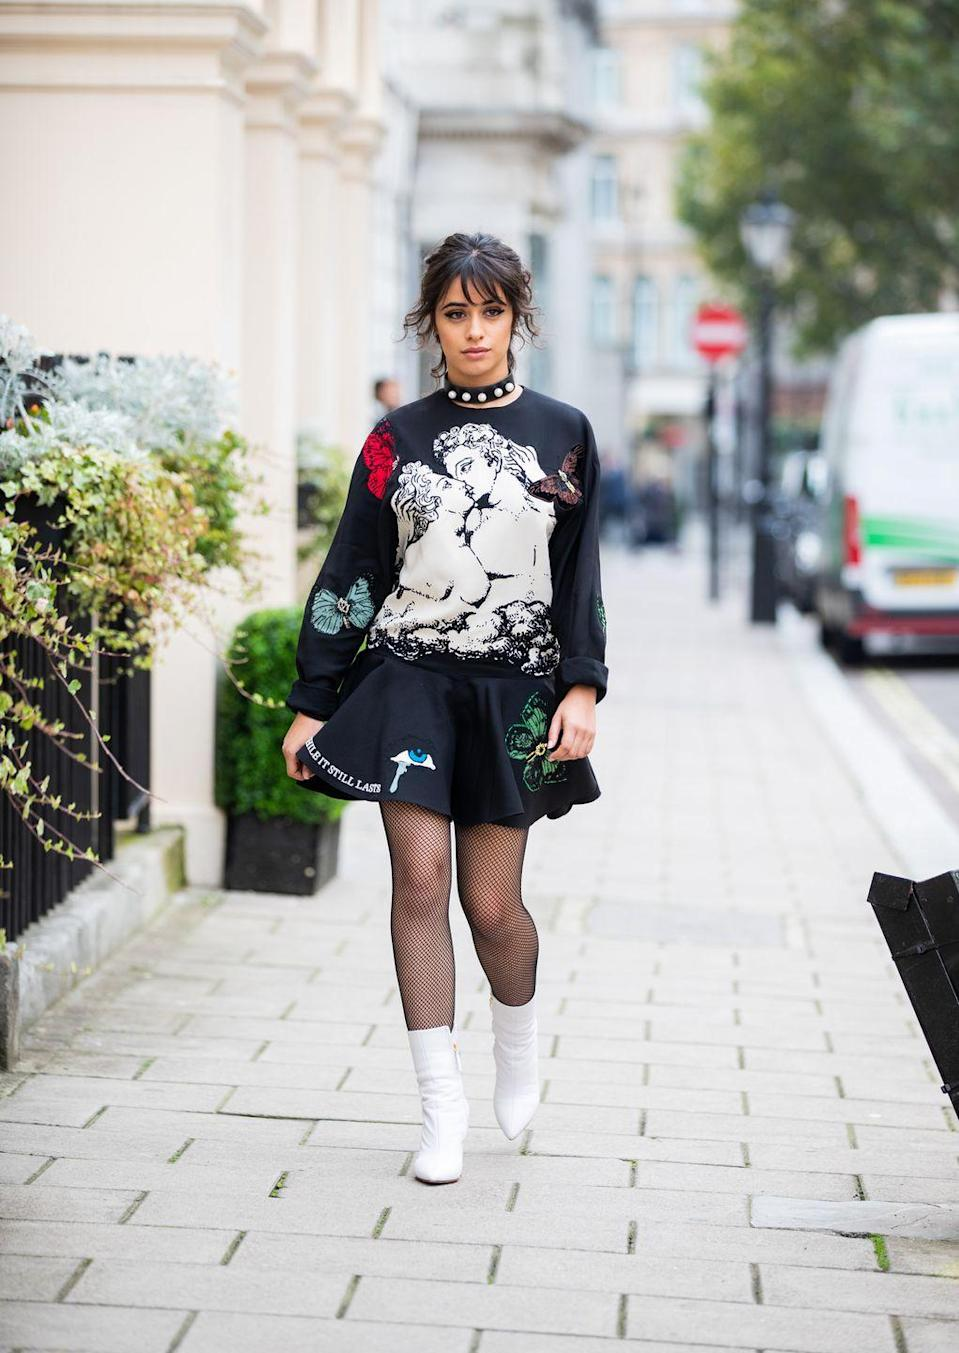 """<p>Filing this photo away under """"Proof That Sweats Are Perfect For Every Occasion."""" Pair a sweatshirt with a mini skirt and booties (plus, LOTS of pearls) for a Camila Cabello-approved pair-up.</p><p><strong>What you'll need:</strong> <em>Venus Crew Sweatshirt, $40, And I Get Dressed</em></p><p><a class=""""link rapid-noclick-resp"""" href=""""https://andigetdressed.com/merch/grey-ruffley-doop-crew/"""" rel=""""nofollow noopener"""" target=""""_blank"""" data-ylk=""""slk:SHOP NOW"""">SHOP NOW</a></p>"""